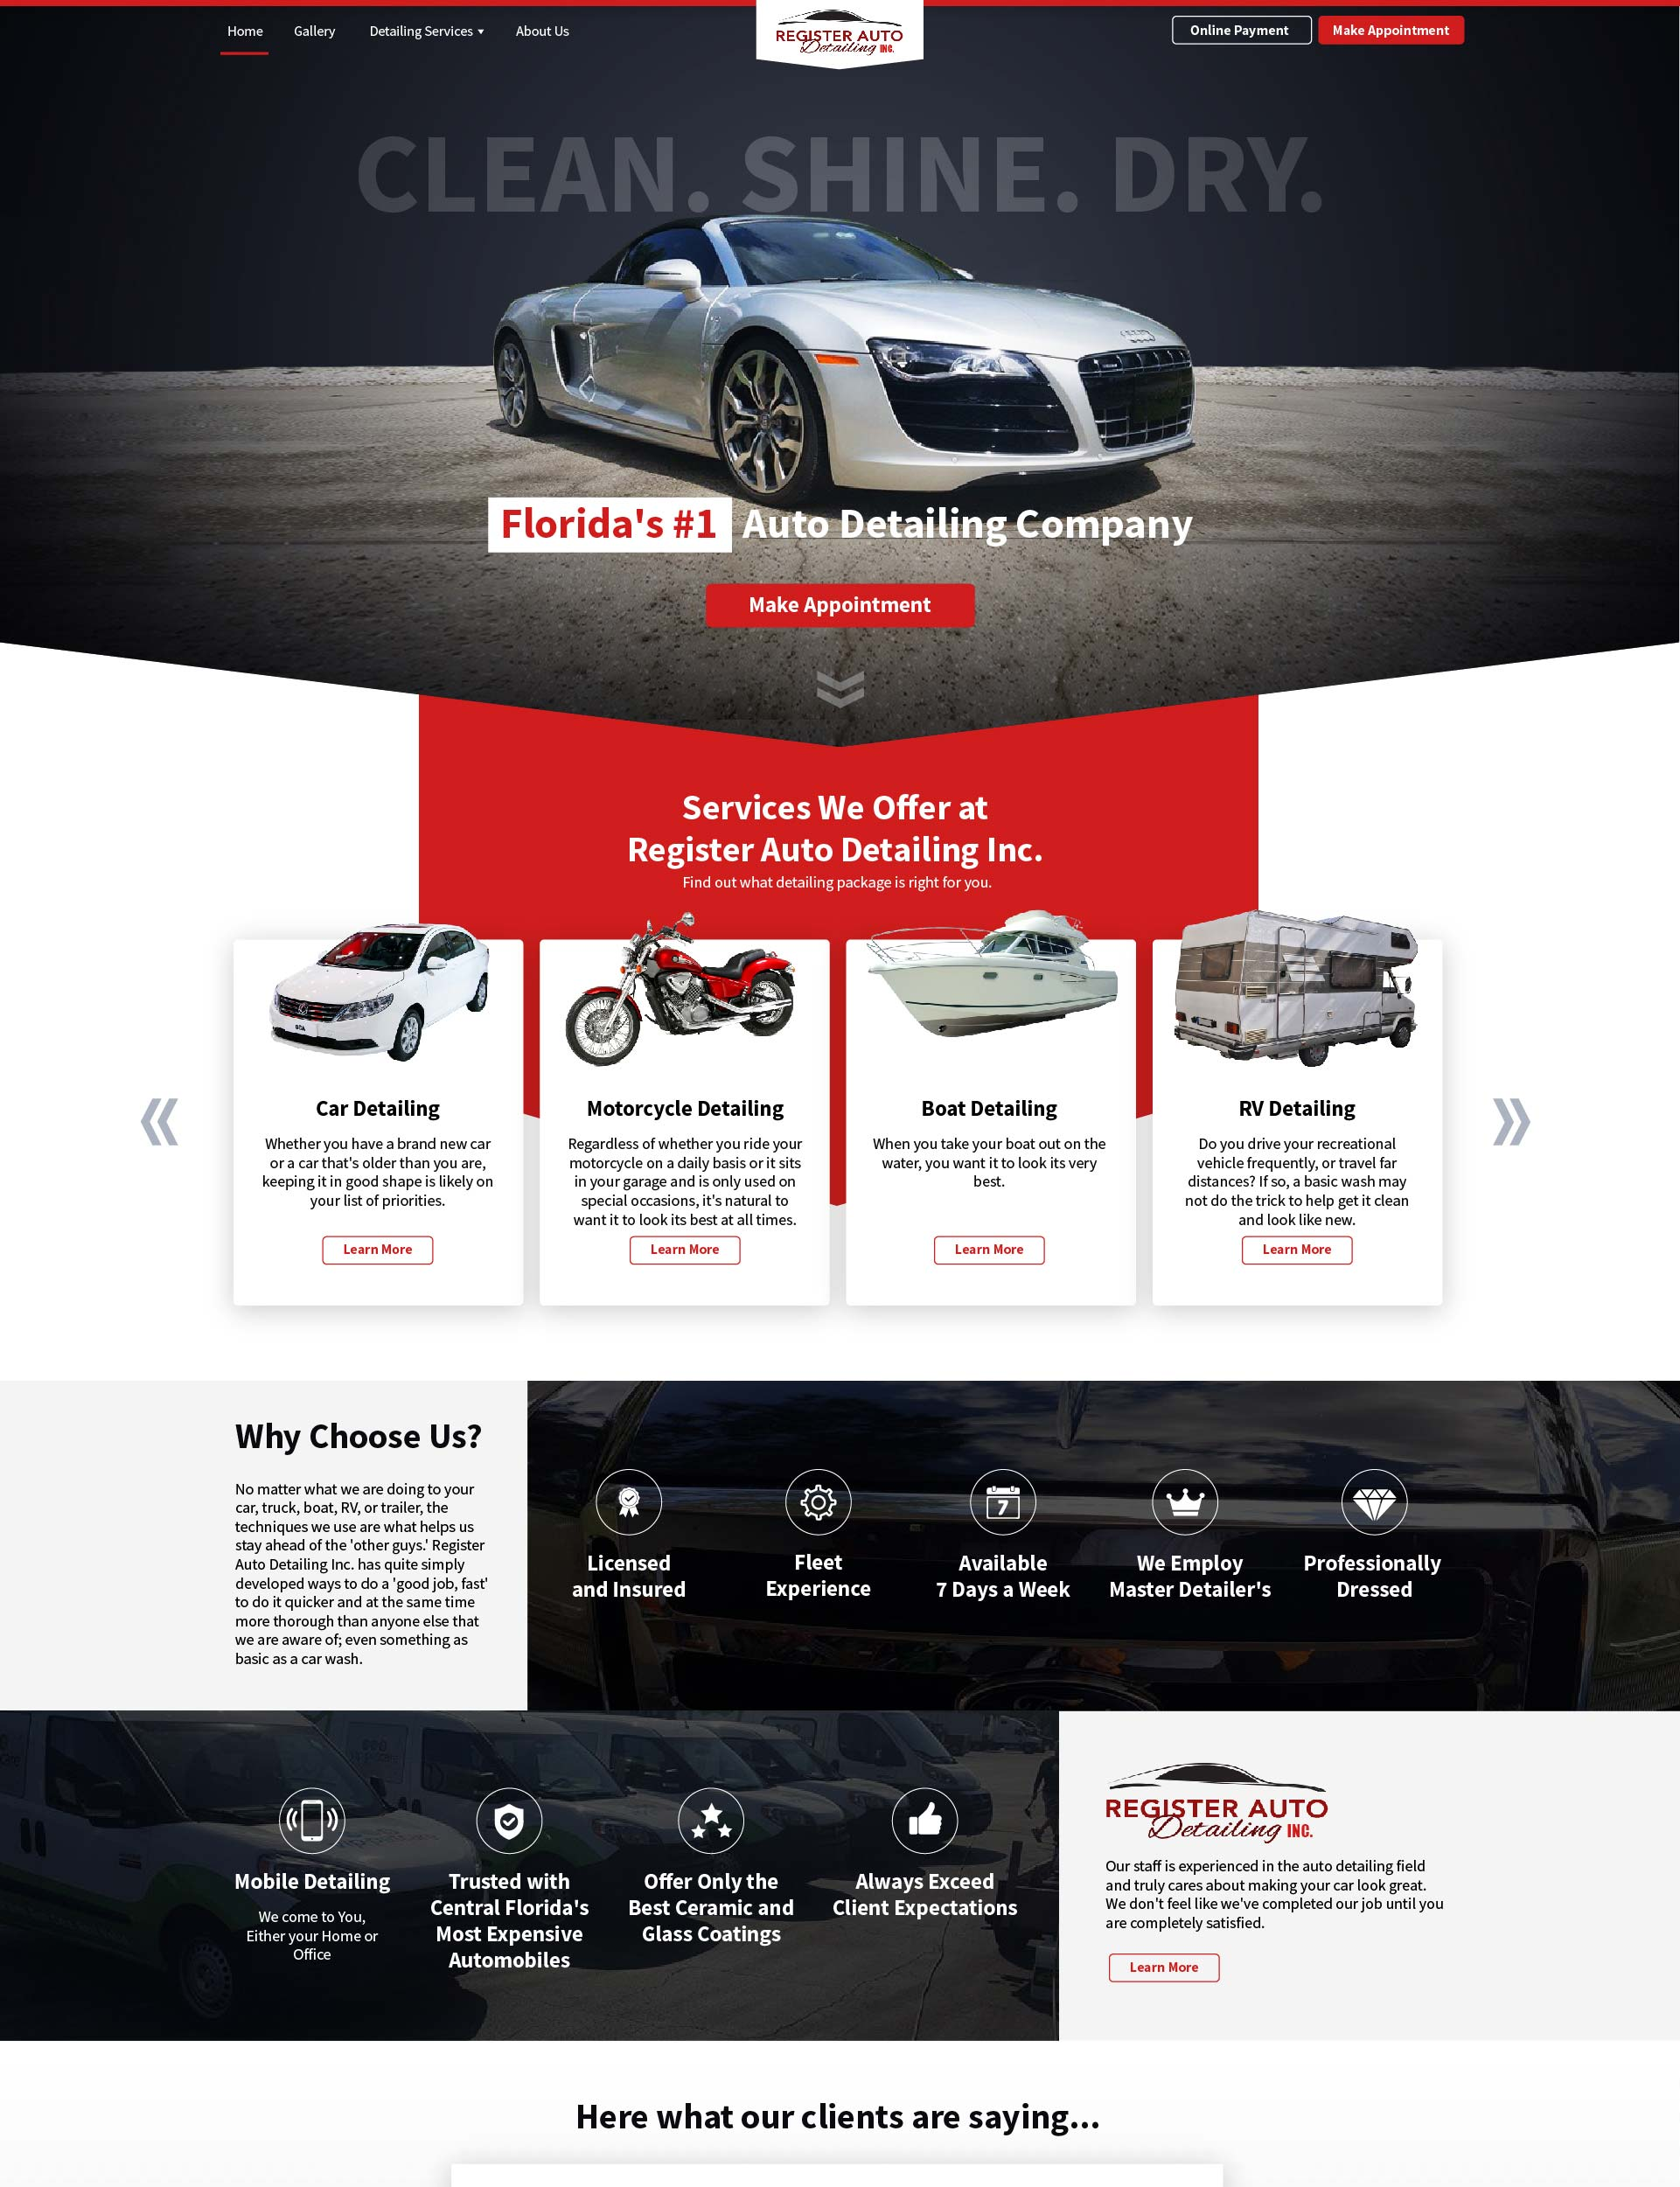 Register Auto Detailing Mockup Web Lakeland design